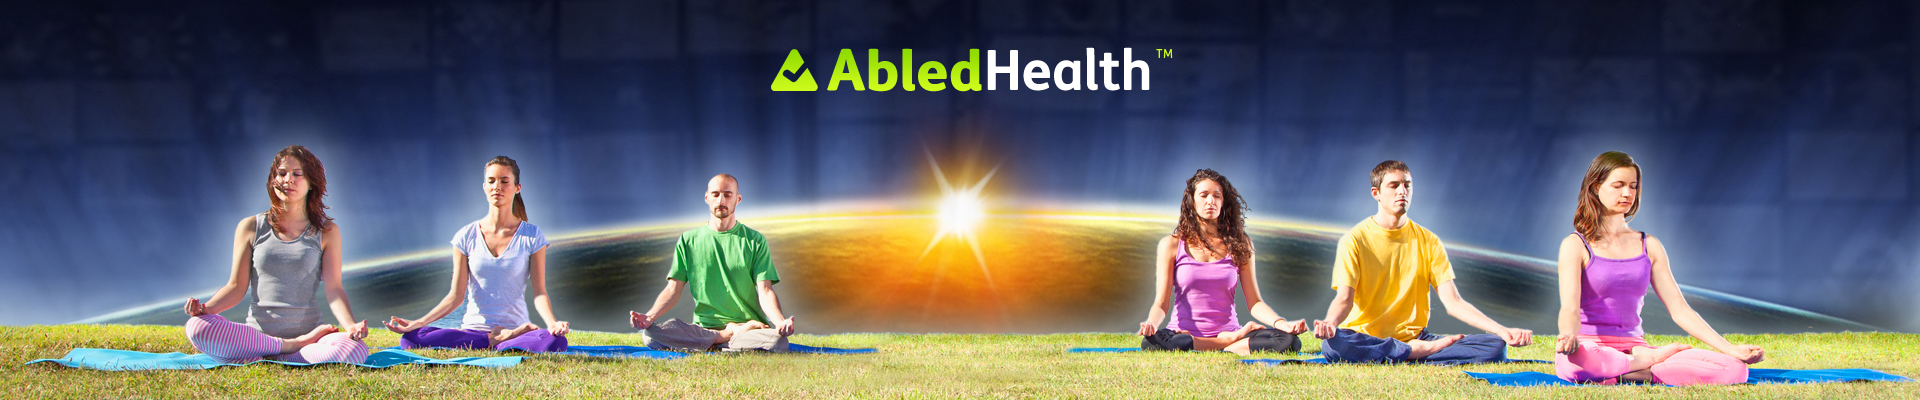 Abledhealth banner shows 4 people meditating in the lotus position on the grass in front of a digital backdrop of a sunrise over the edge of the earth